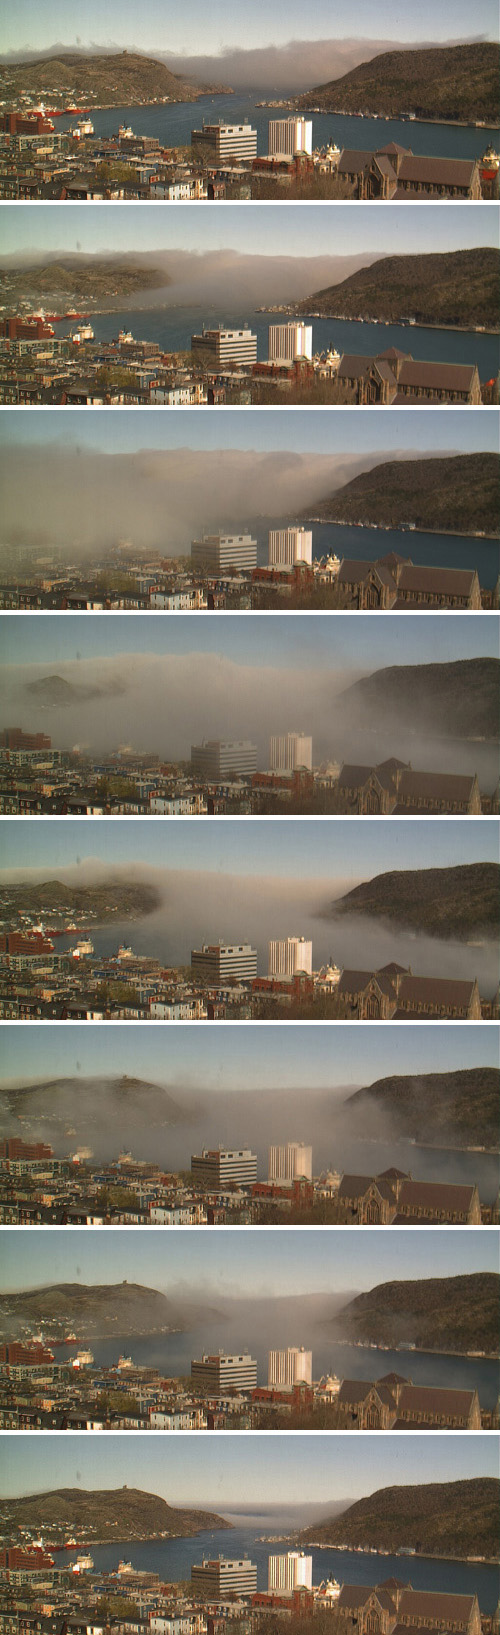 Fog collage - CBC's HarbourCam